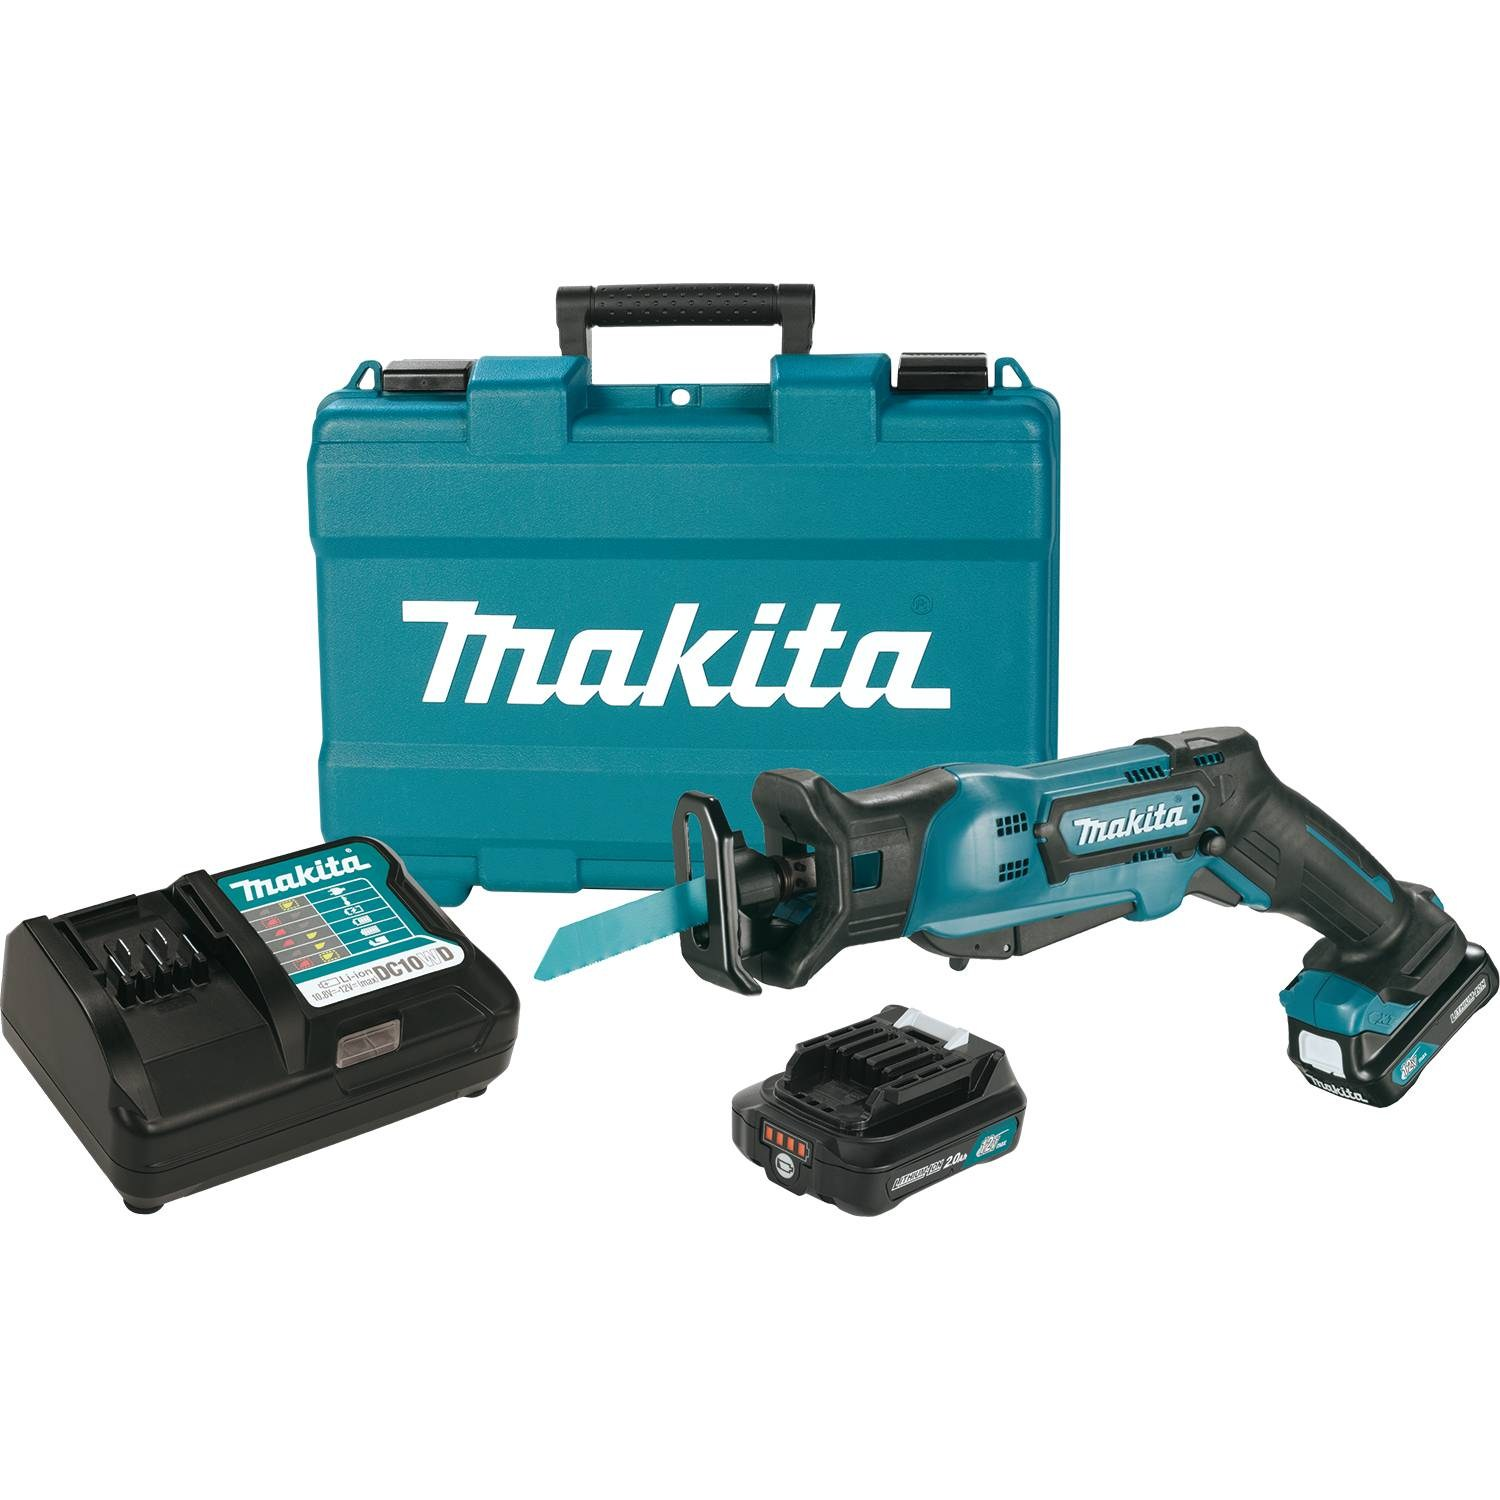 makita rj03r1 12 volt 2 0ah max cxt lithium ion cordless reciprocating saw kit ebay. Black Bedroom Furniture Sets. Home Design Ideas